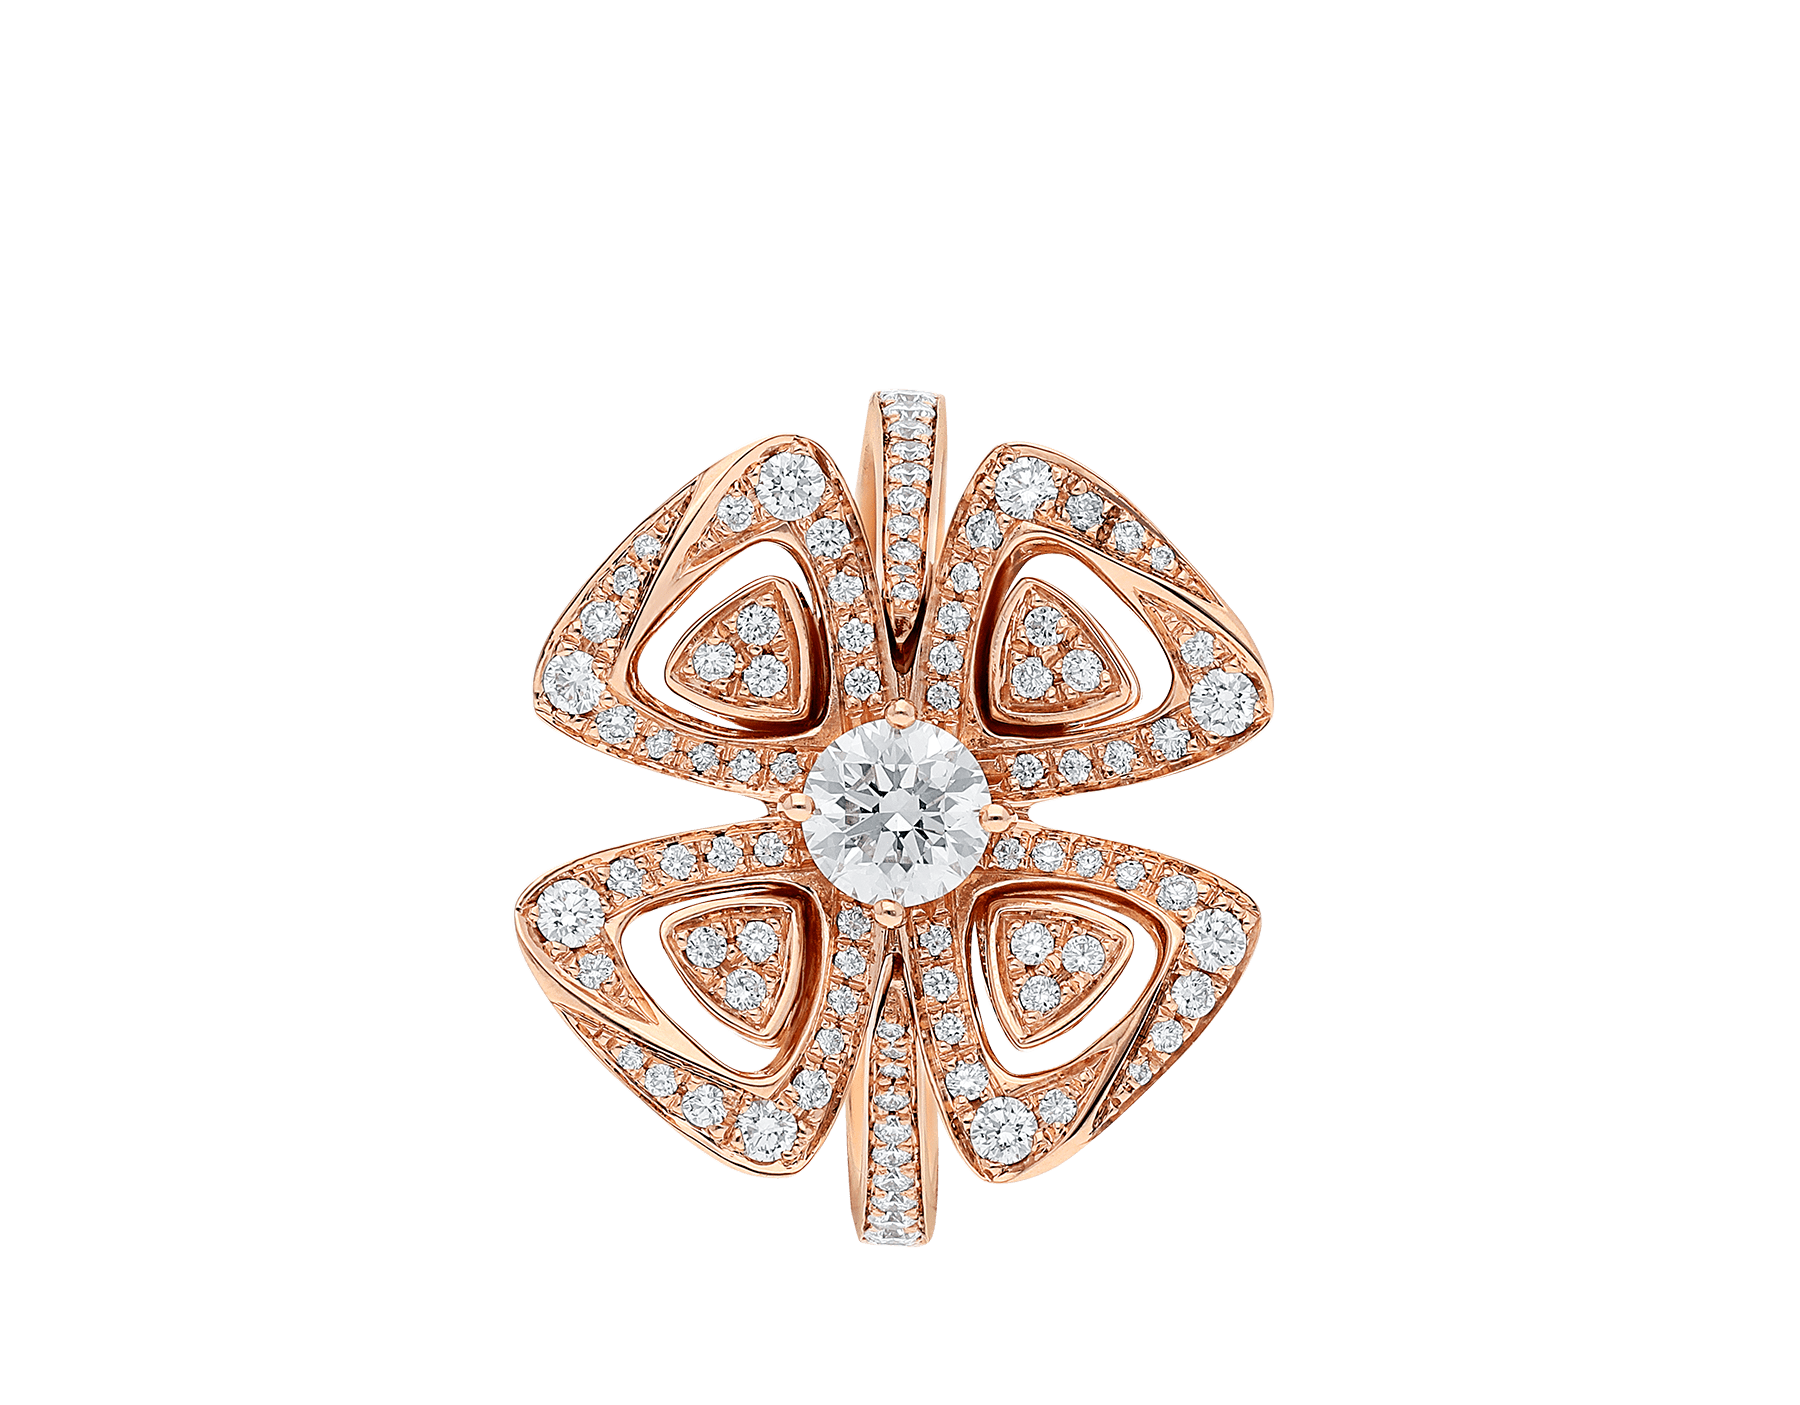 Fiorever 18 kt rose gold ring set with a central diamond and pavé diamonds. AN858504 image 2